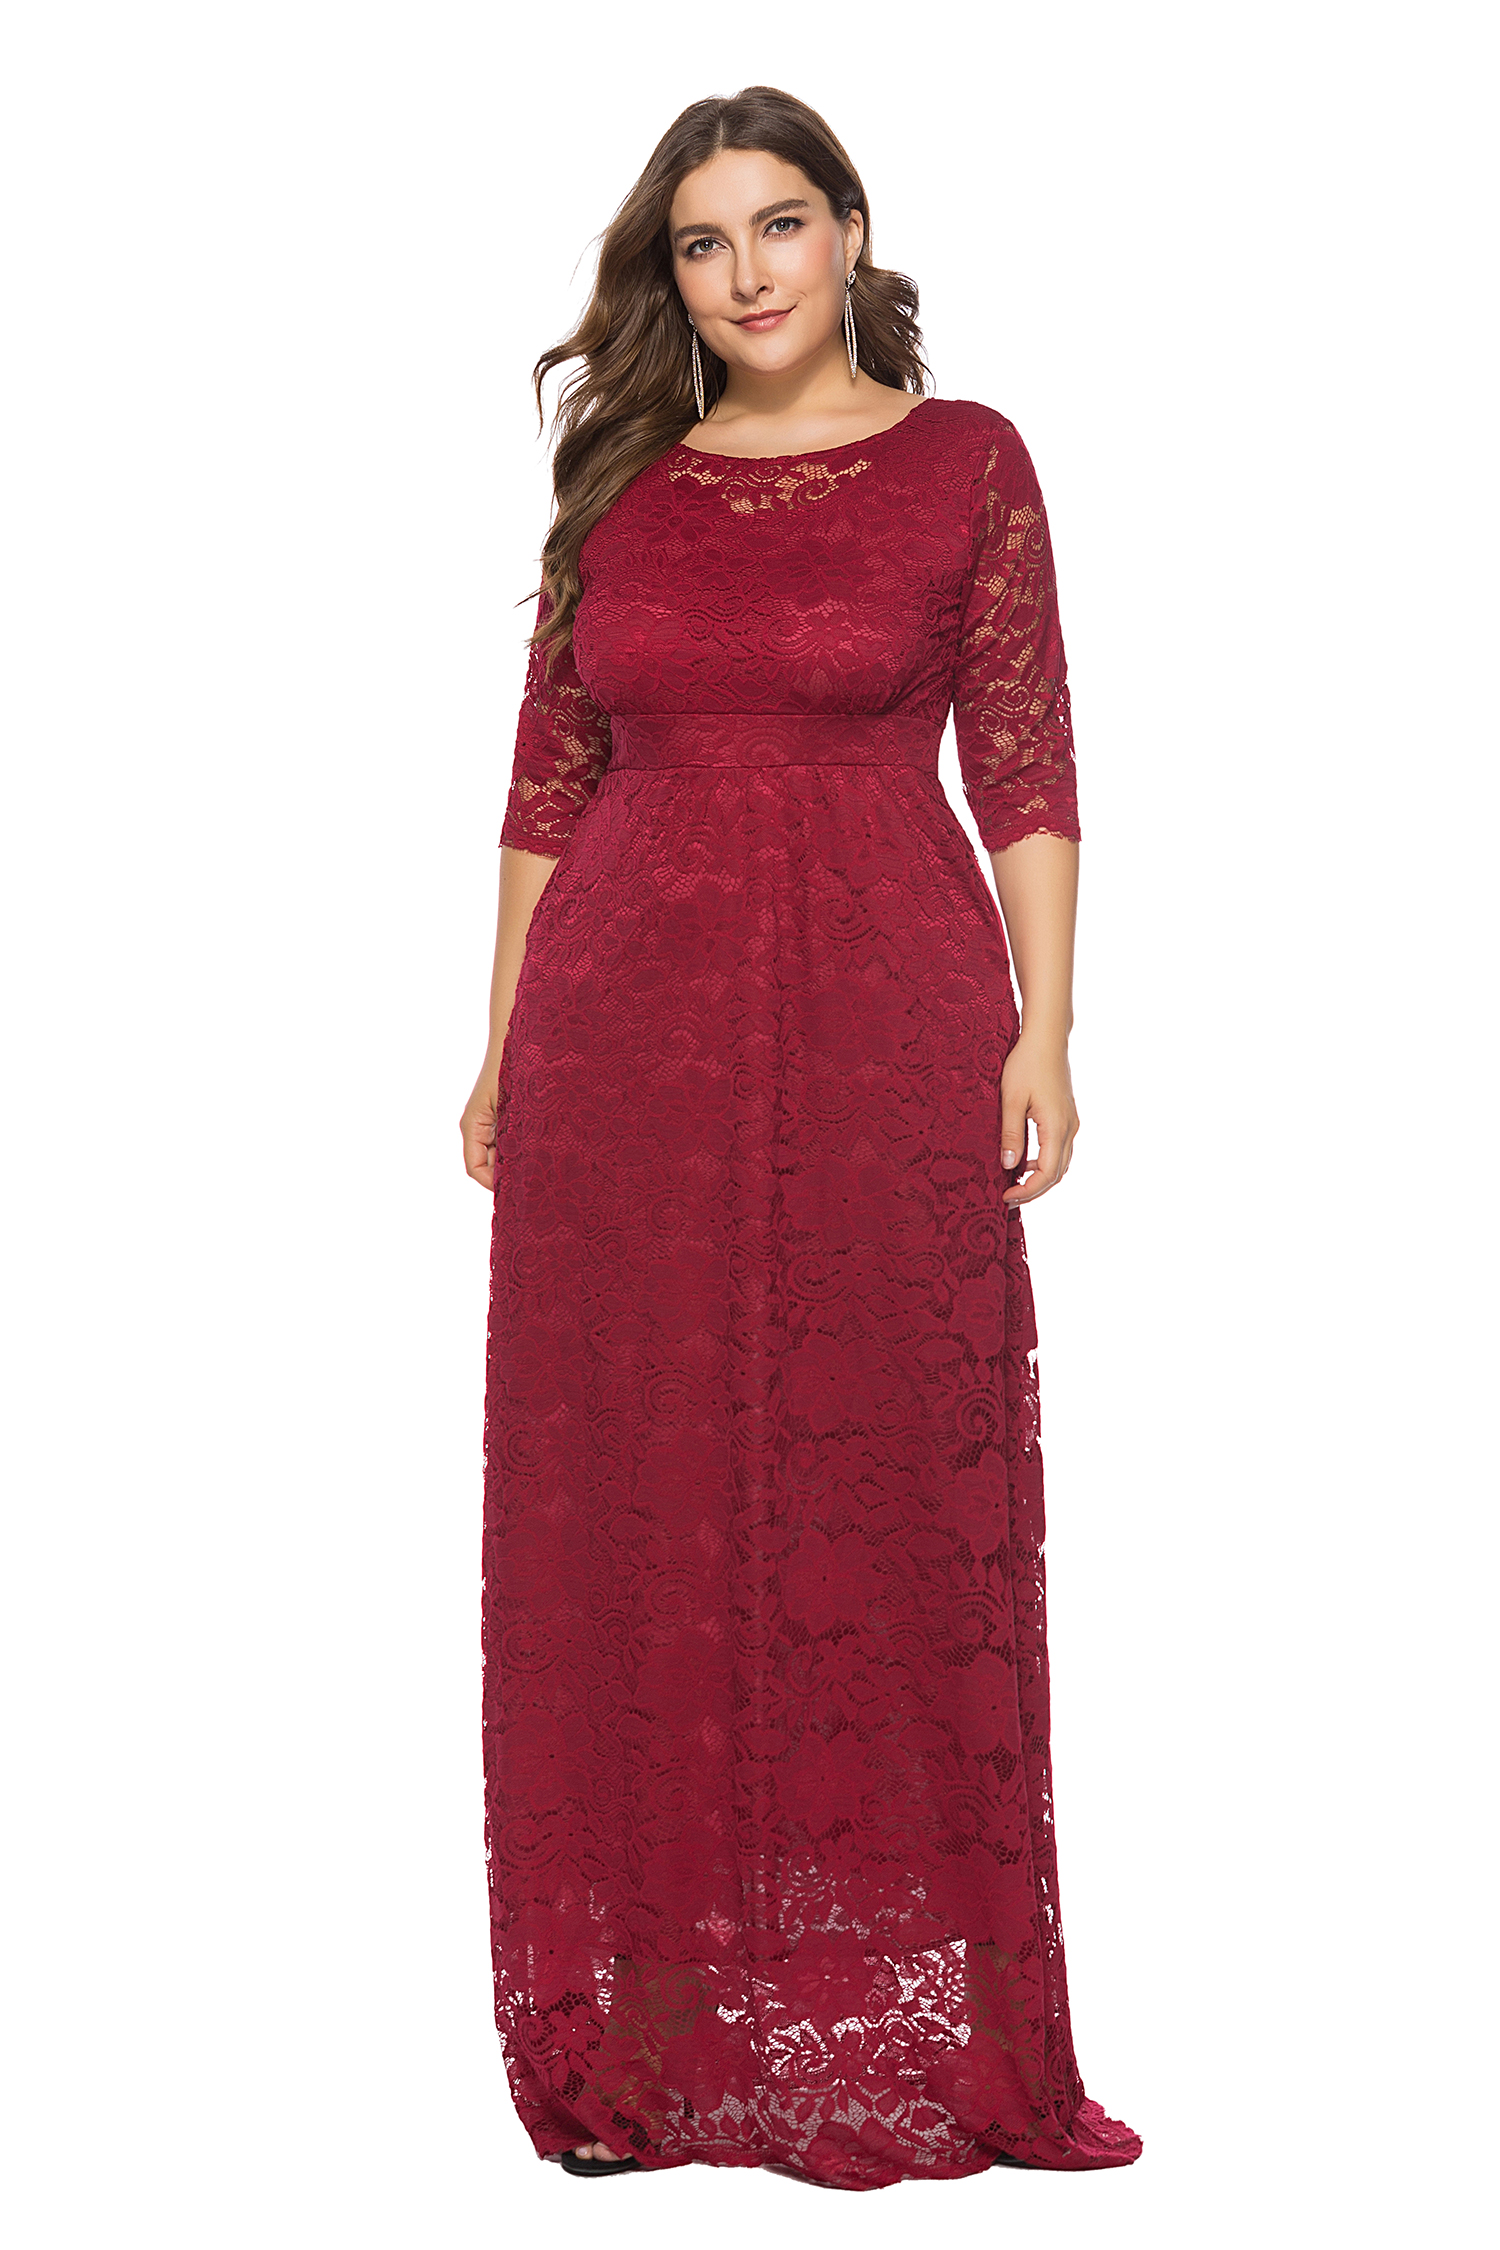 64910ed9c7 US$ 17.25 - Plus Size Full Lace Maxi Dress with 3/4 Sleeves -  www.global-lover.com